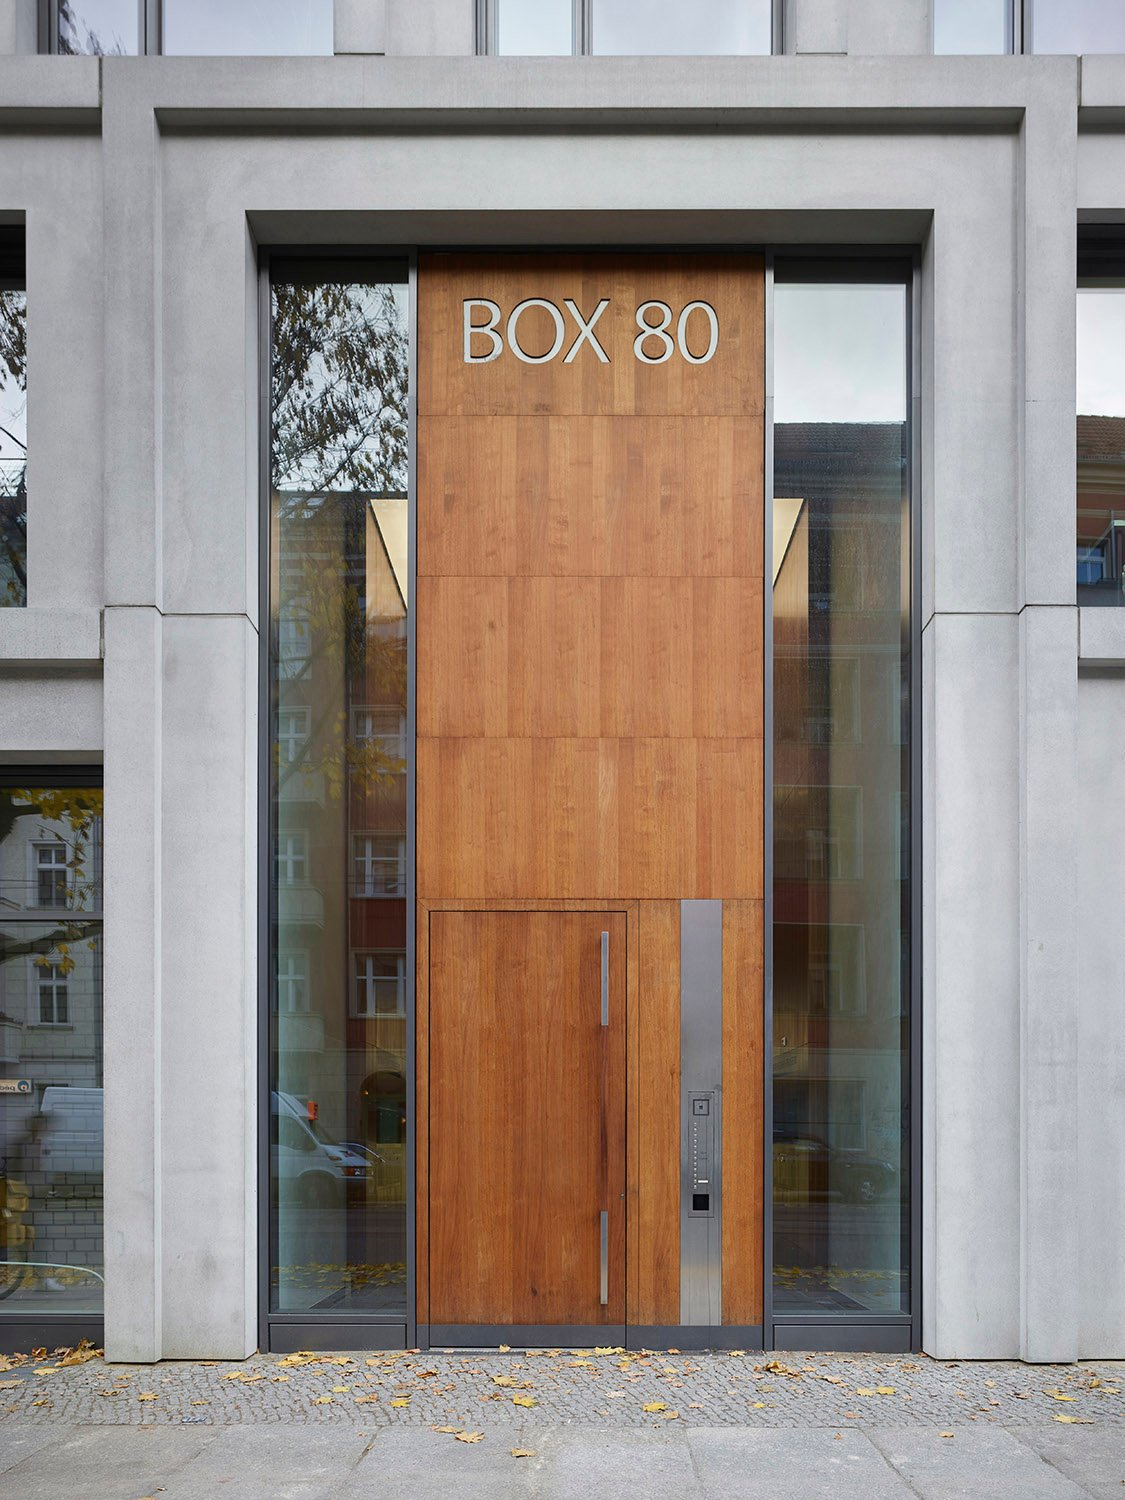 The entrance area with the distinctive door Roland Halbe